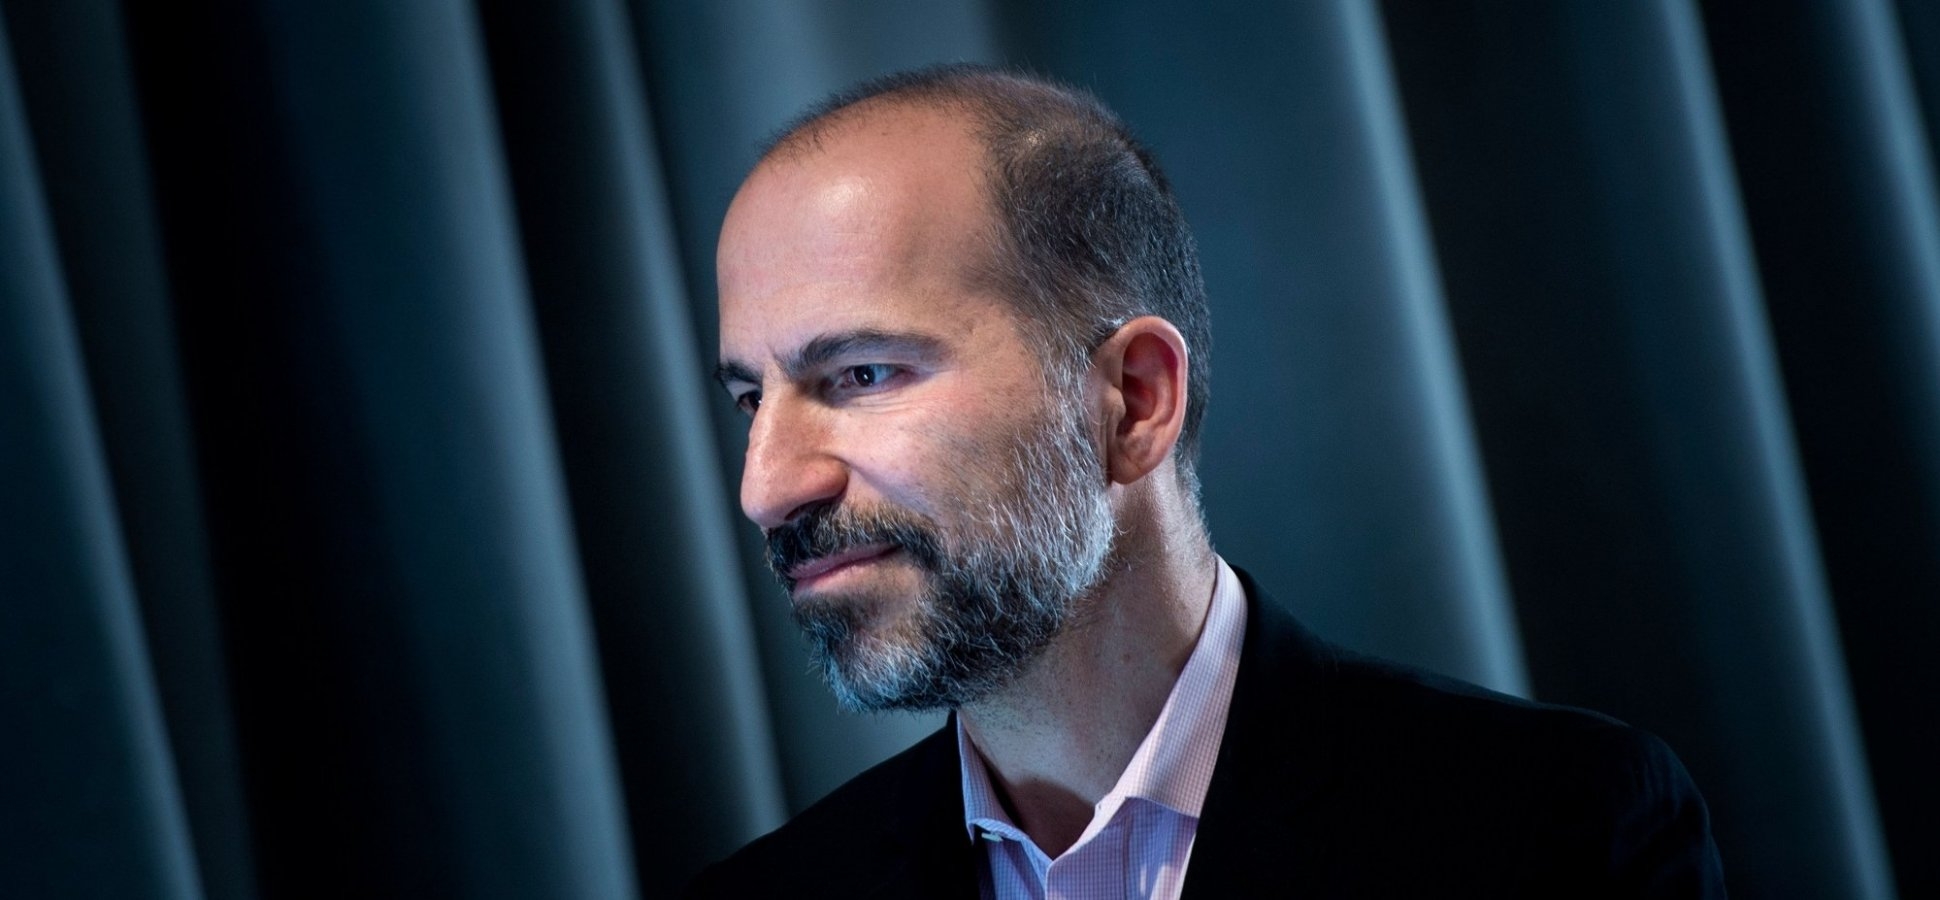 Uber Just Laid Off 350 More Employees. Here's Why That Won't Help the Company Make Money